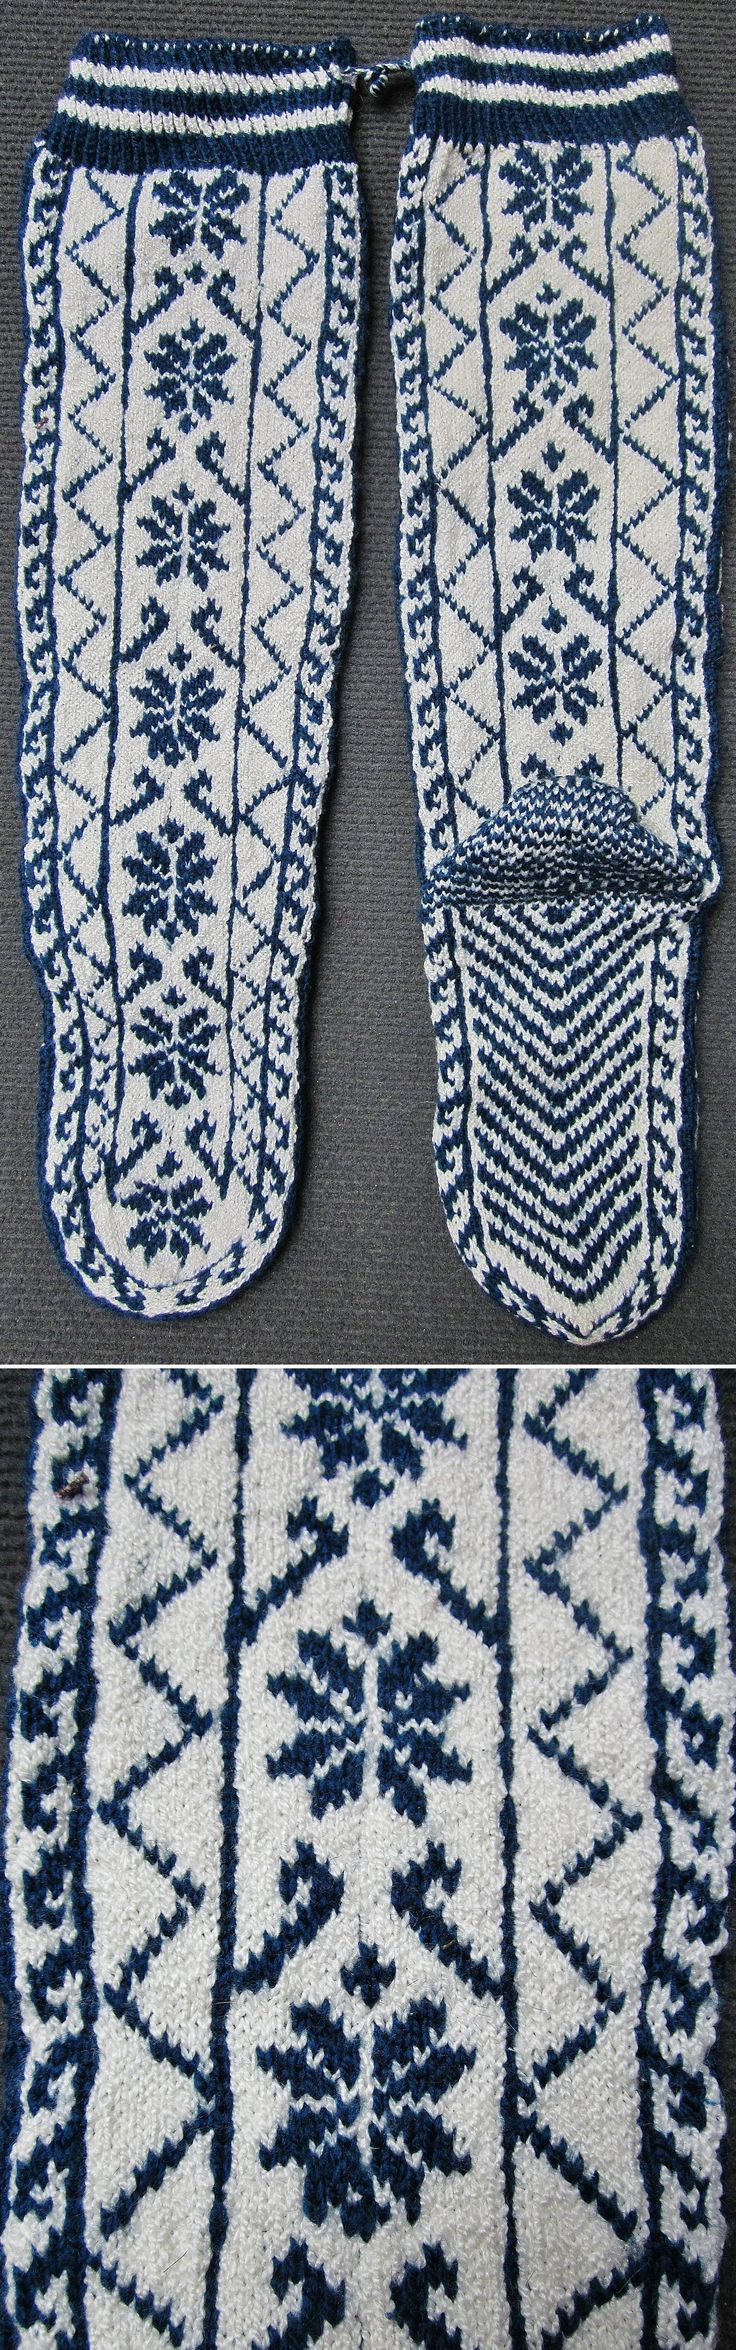 Traditional woollen stockings for women.  From Çamlıhemşin (Rize province), late 20th century. Ethnic goup: Hemşinli.  (Inv.nr. çor032- Kavak Costume Collection - Antwerpen/Belgium).